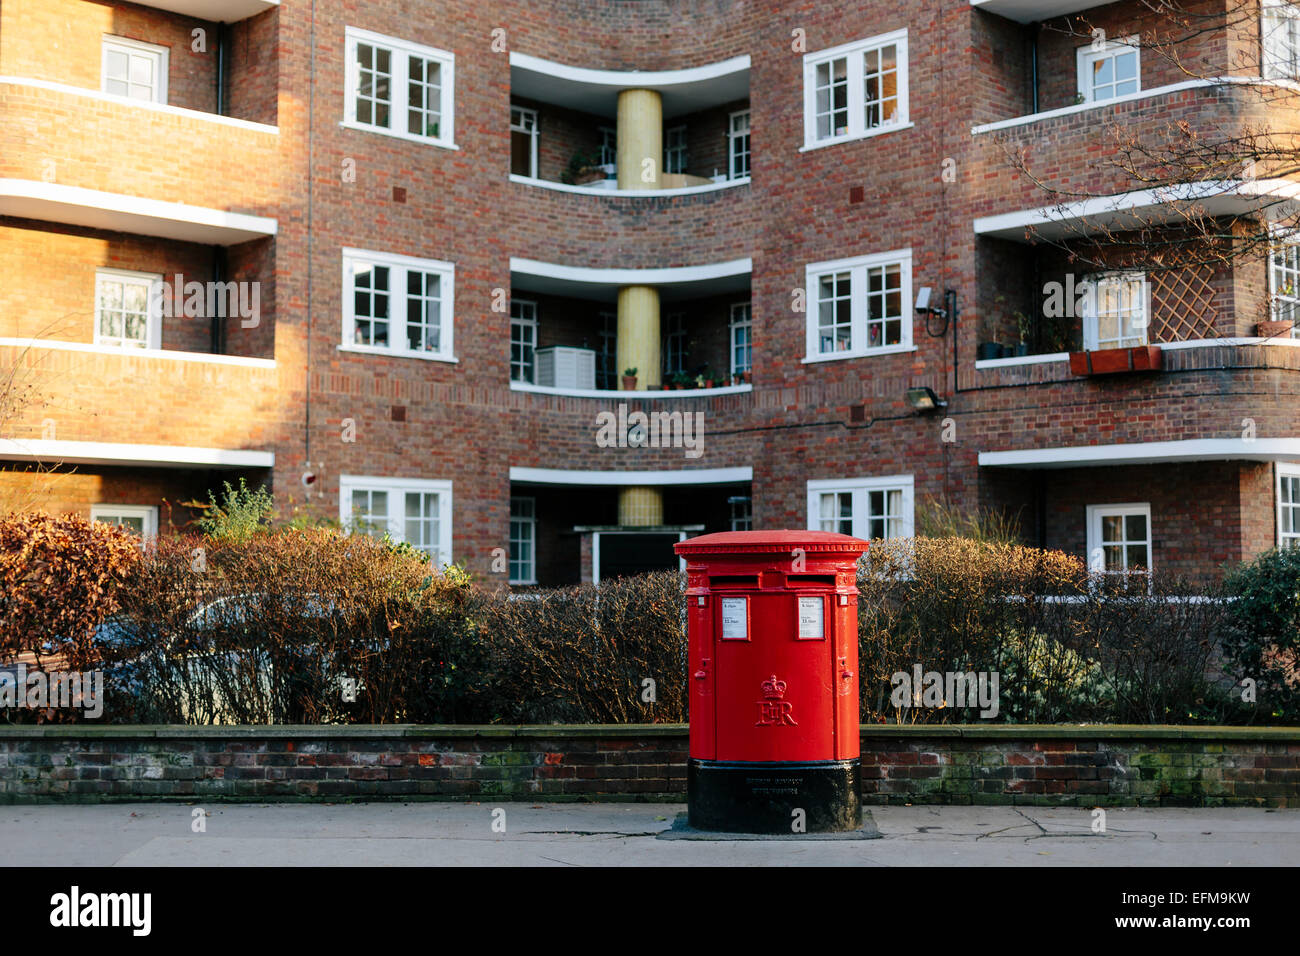 British Red Pillar Post Box in front of Flats in Belgravia London (Landscape format) Stock Photo